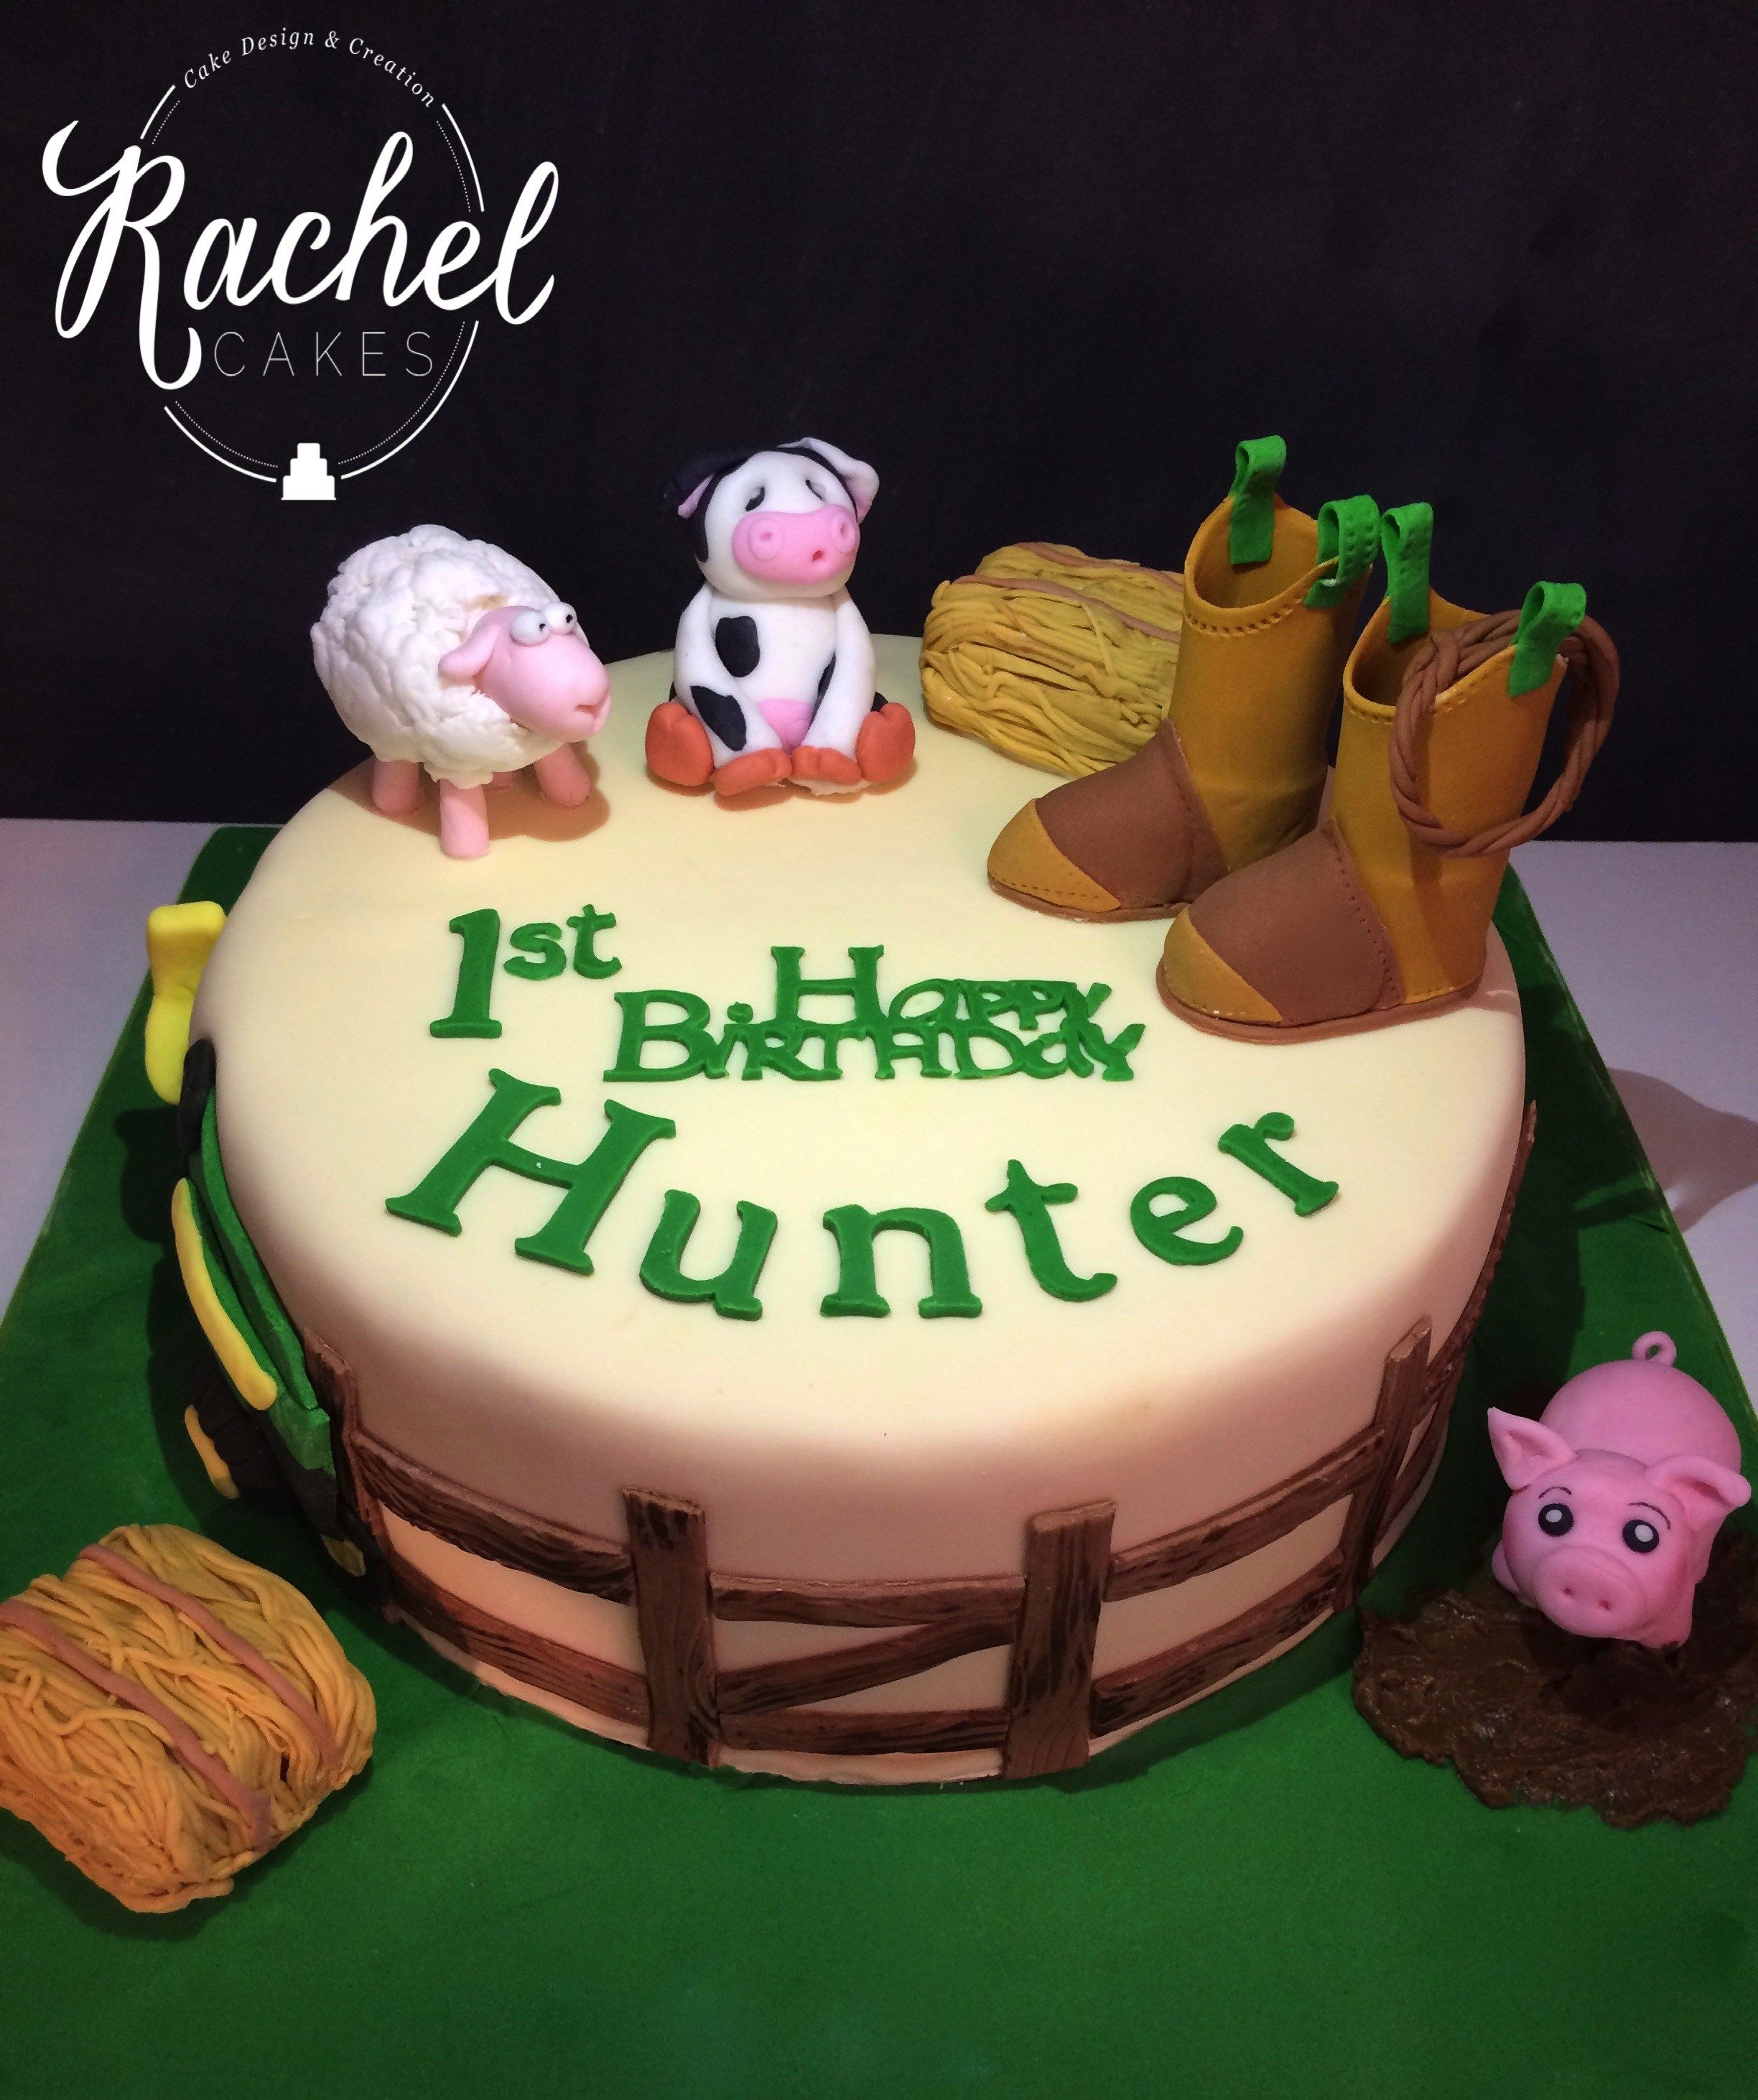 John Deere themed Birthday Cake for a 1st Birthday party Rachel